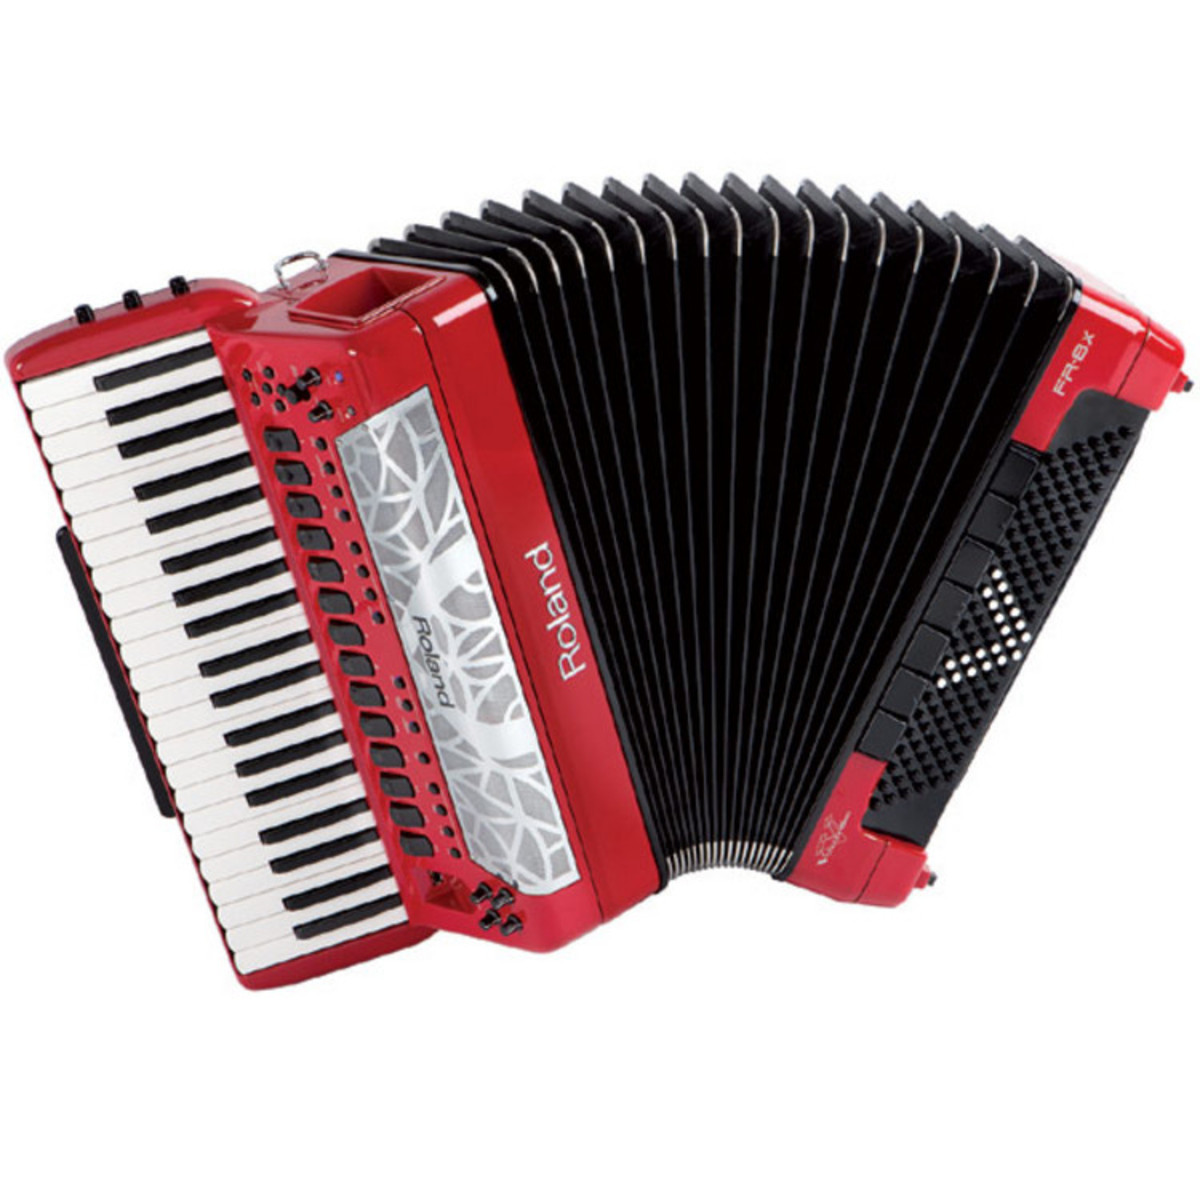 roland fr 8x v accord on de type piano rouge gear4music. Black Bedroom Furniture Sets. Home Design Ideas